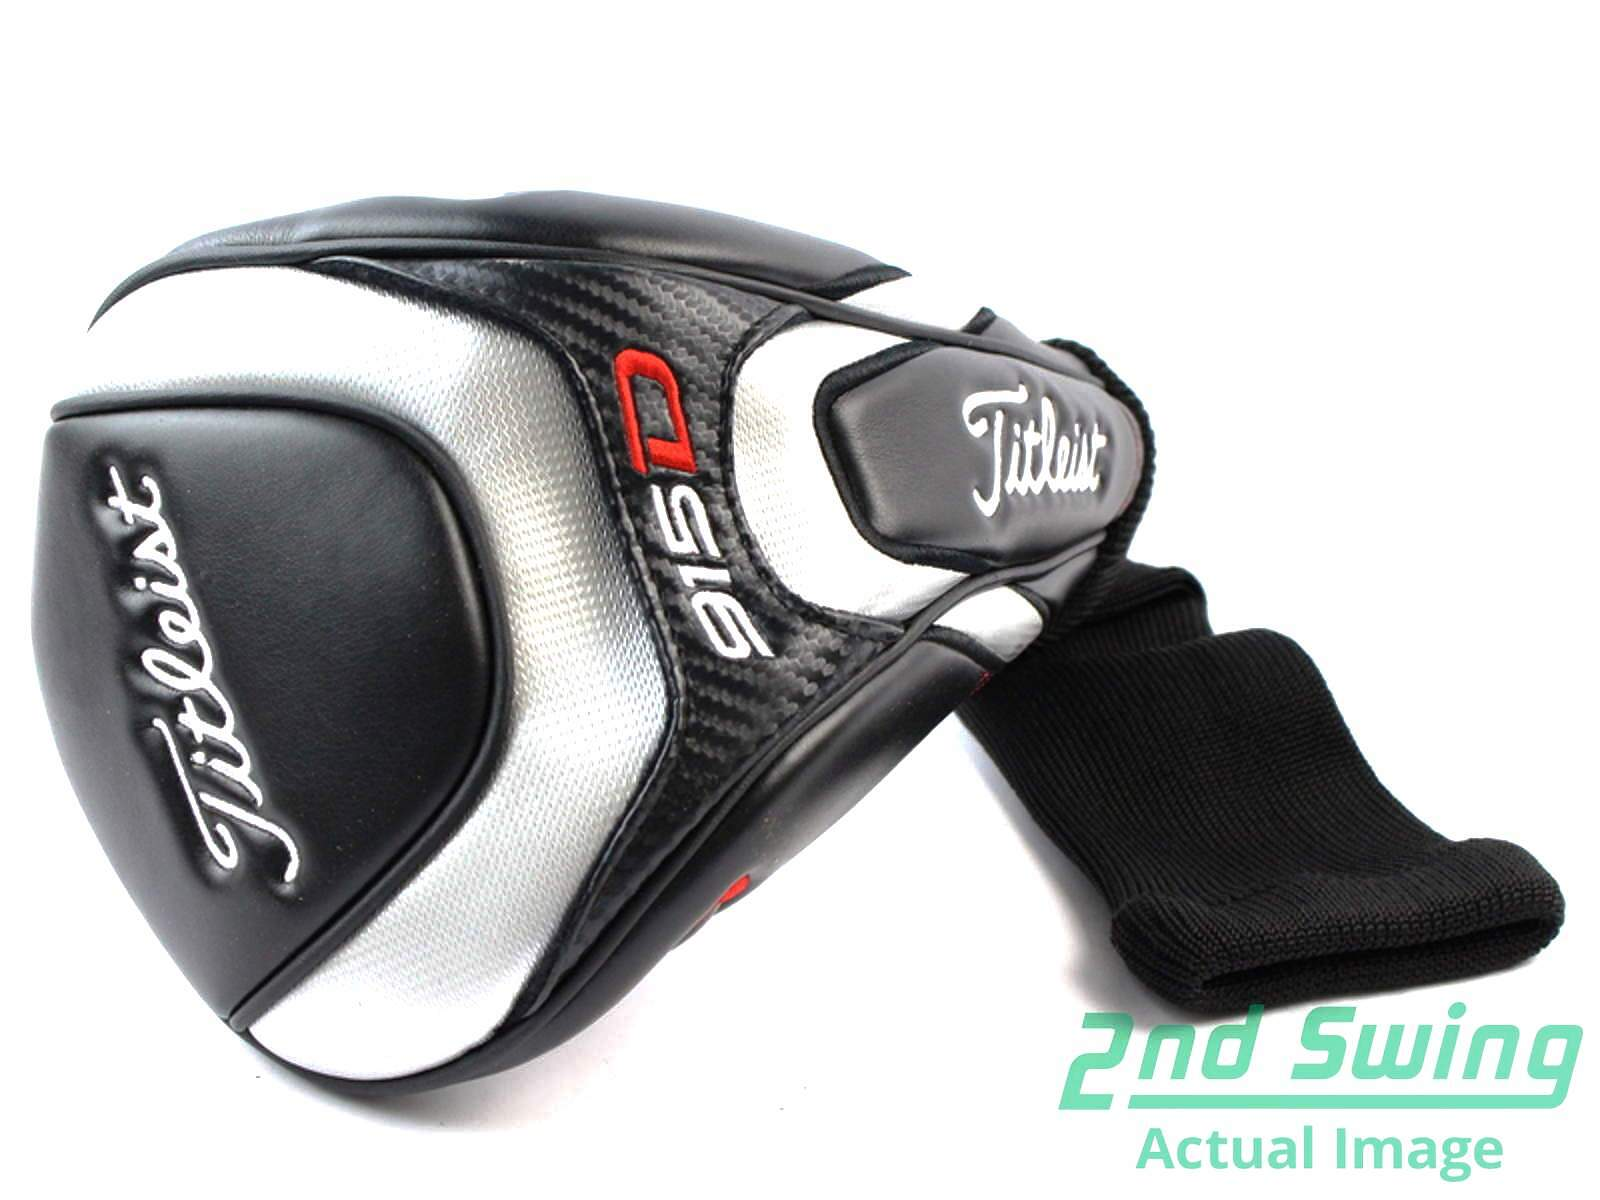 Titleist 915 D2 Driver Headcover Black Red And Silver Golf